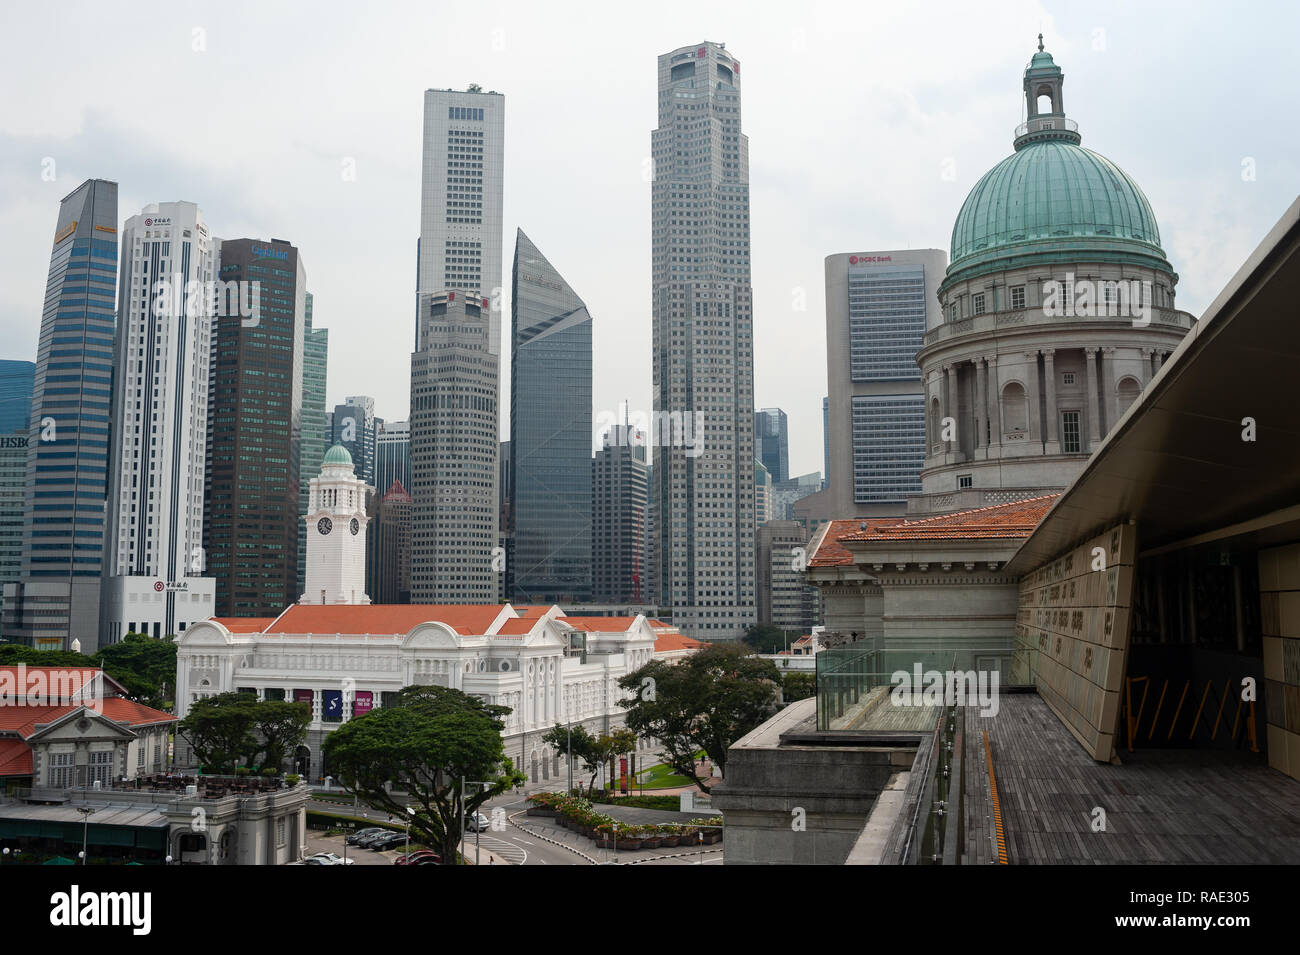 20.12.2018, Singapore, Republic of Singapore, Asia - View from the rooftop terrace at the National Gallery Singapore of the city skyline. Stock Photo